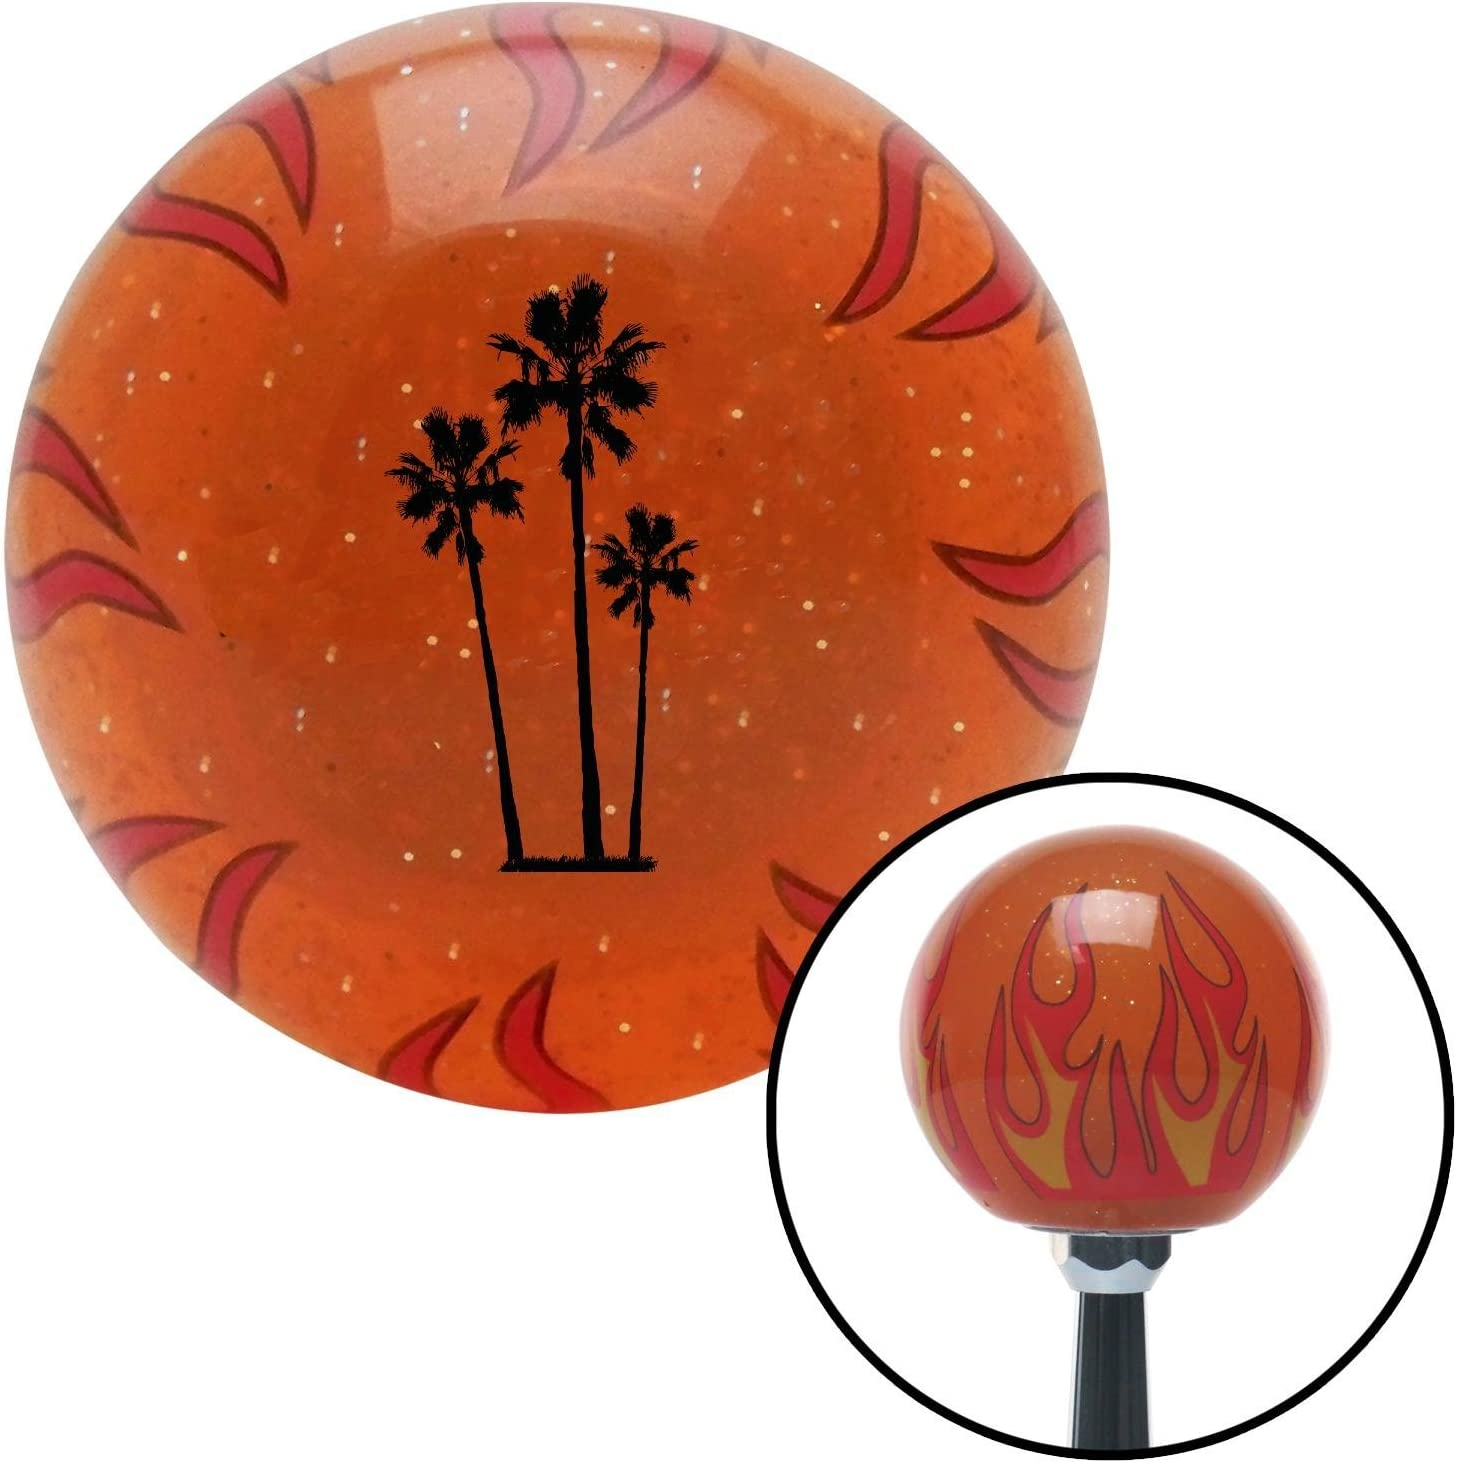 Black Group of Palms American Shifter 257437 Orange Flame Metal Flake Shift Knob with M16 x 1.5 Insert